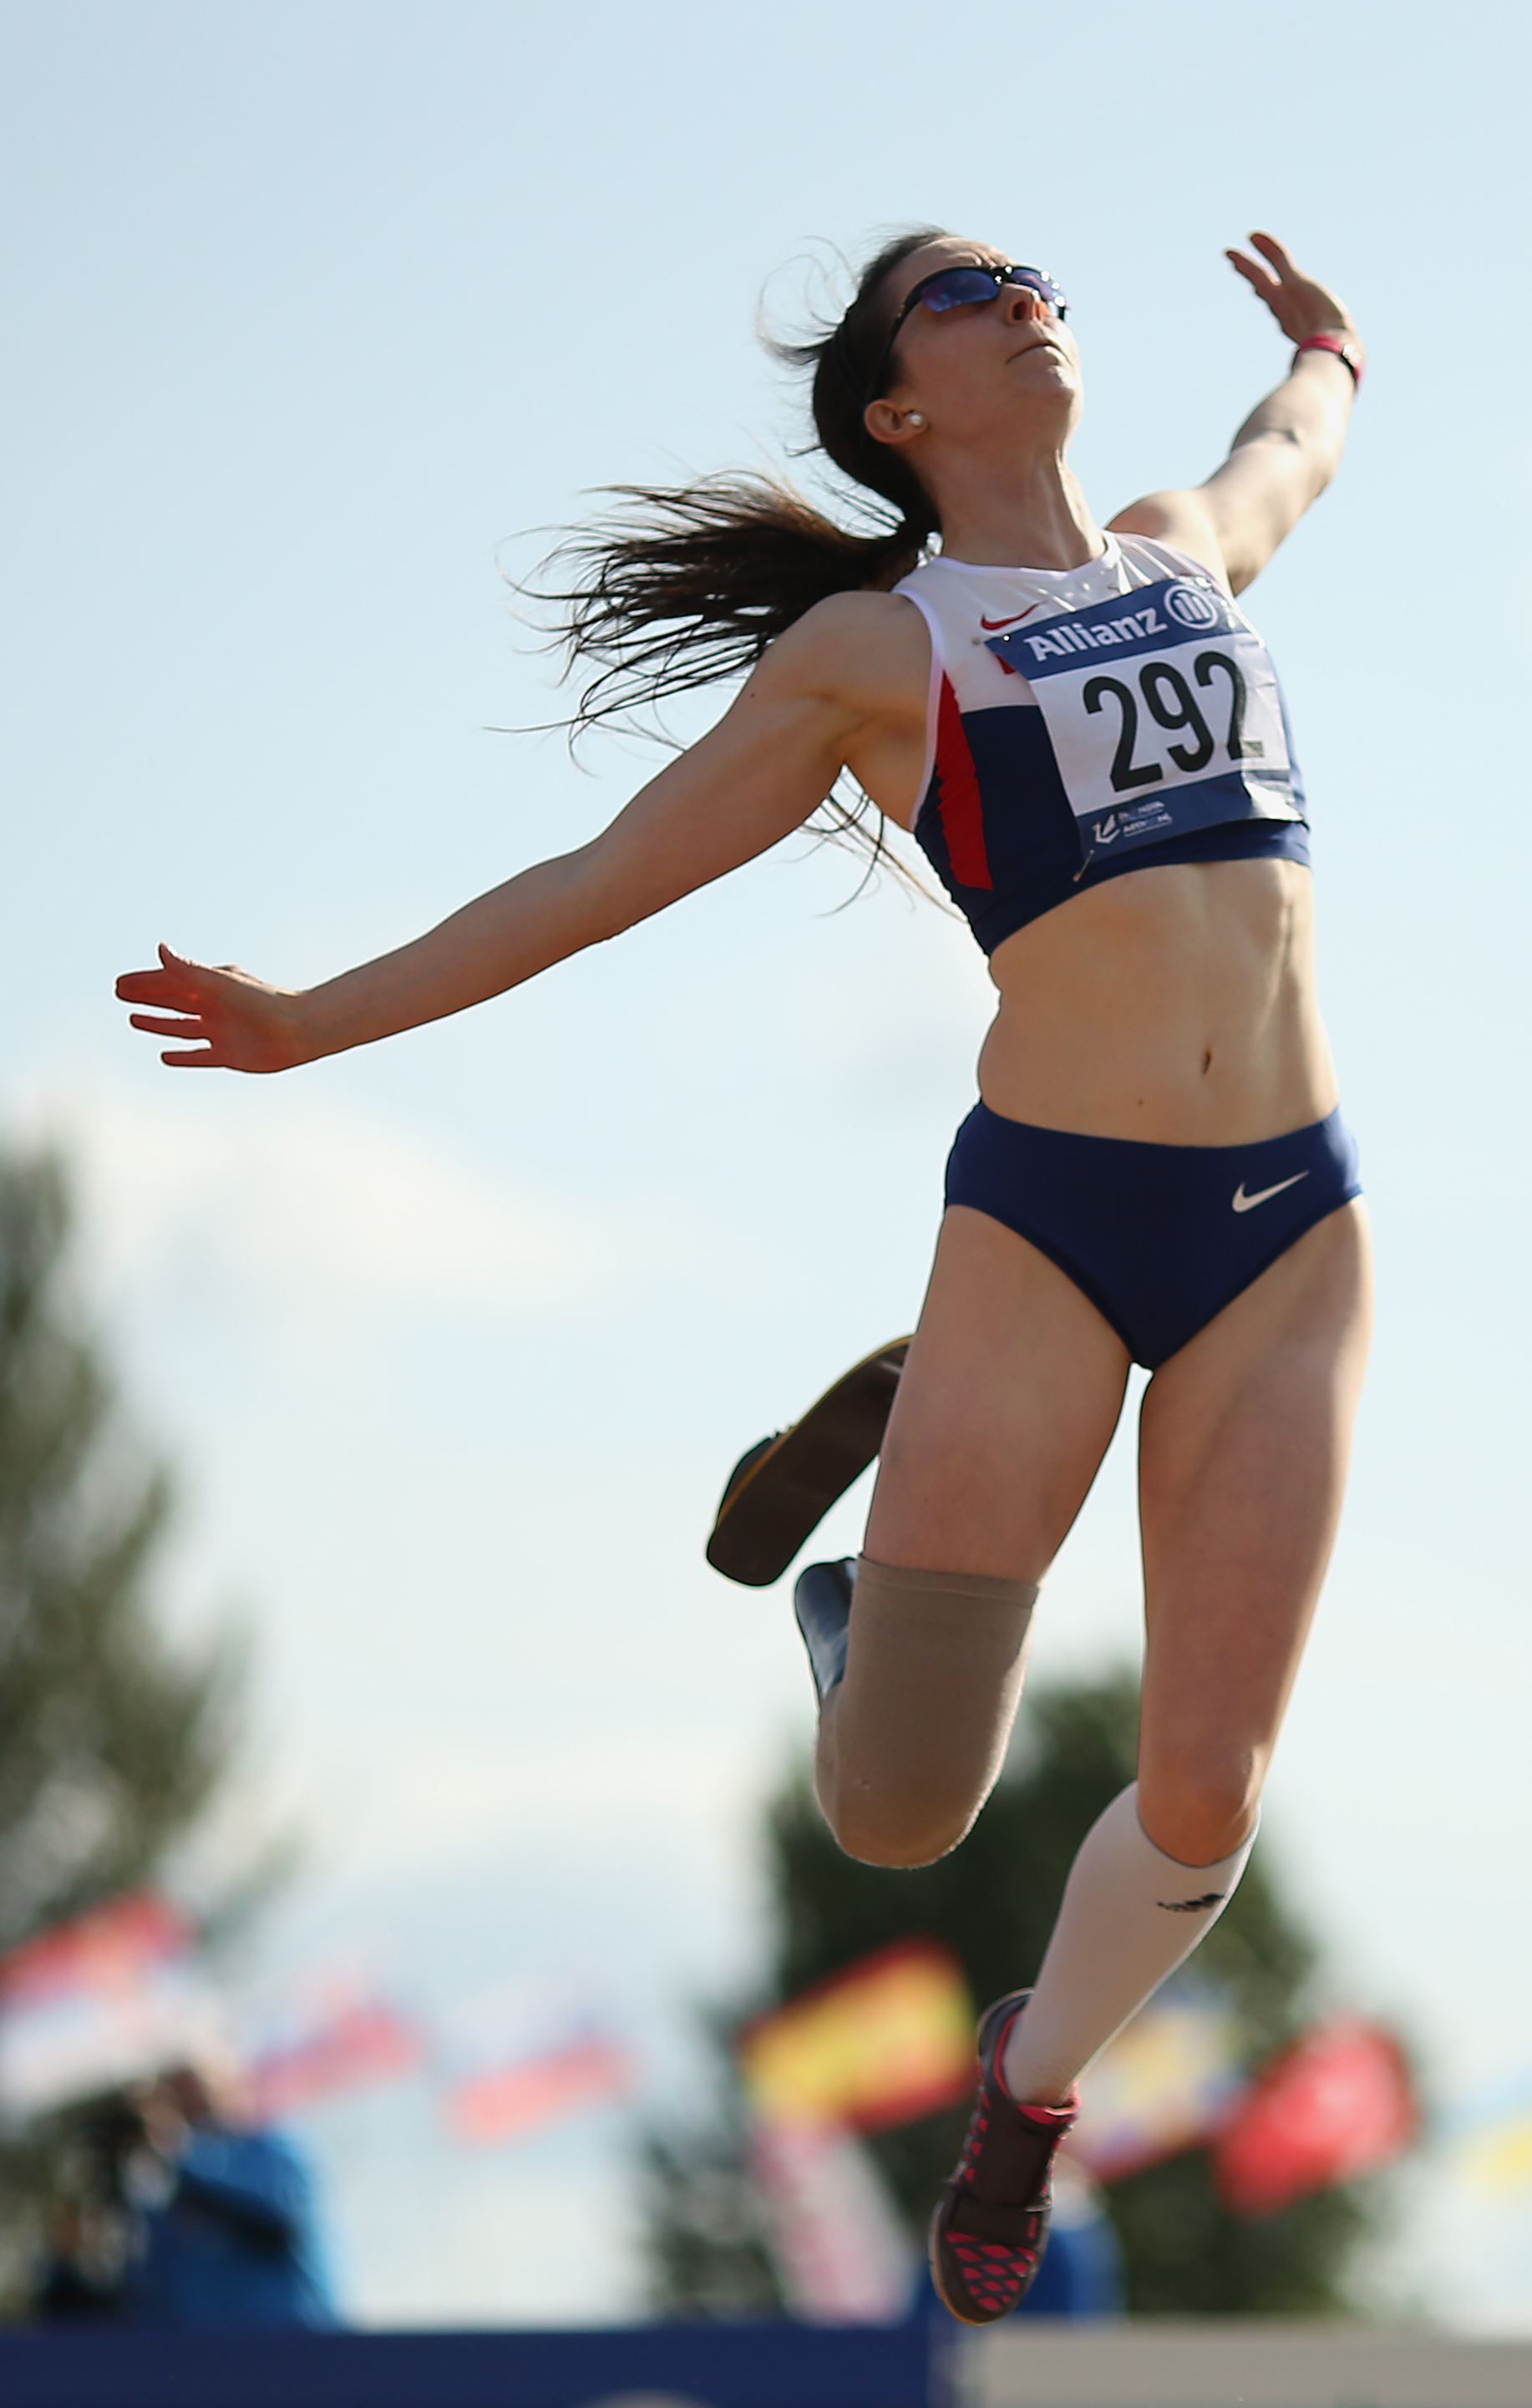 Leaping to victory at the 2014 IPC European Champs